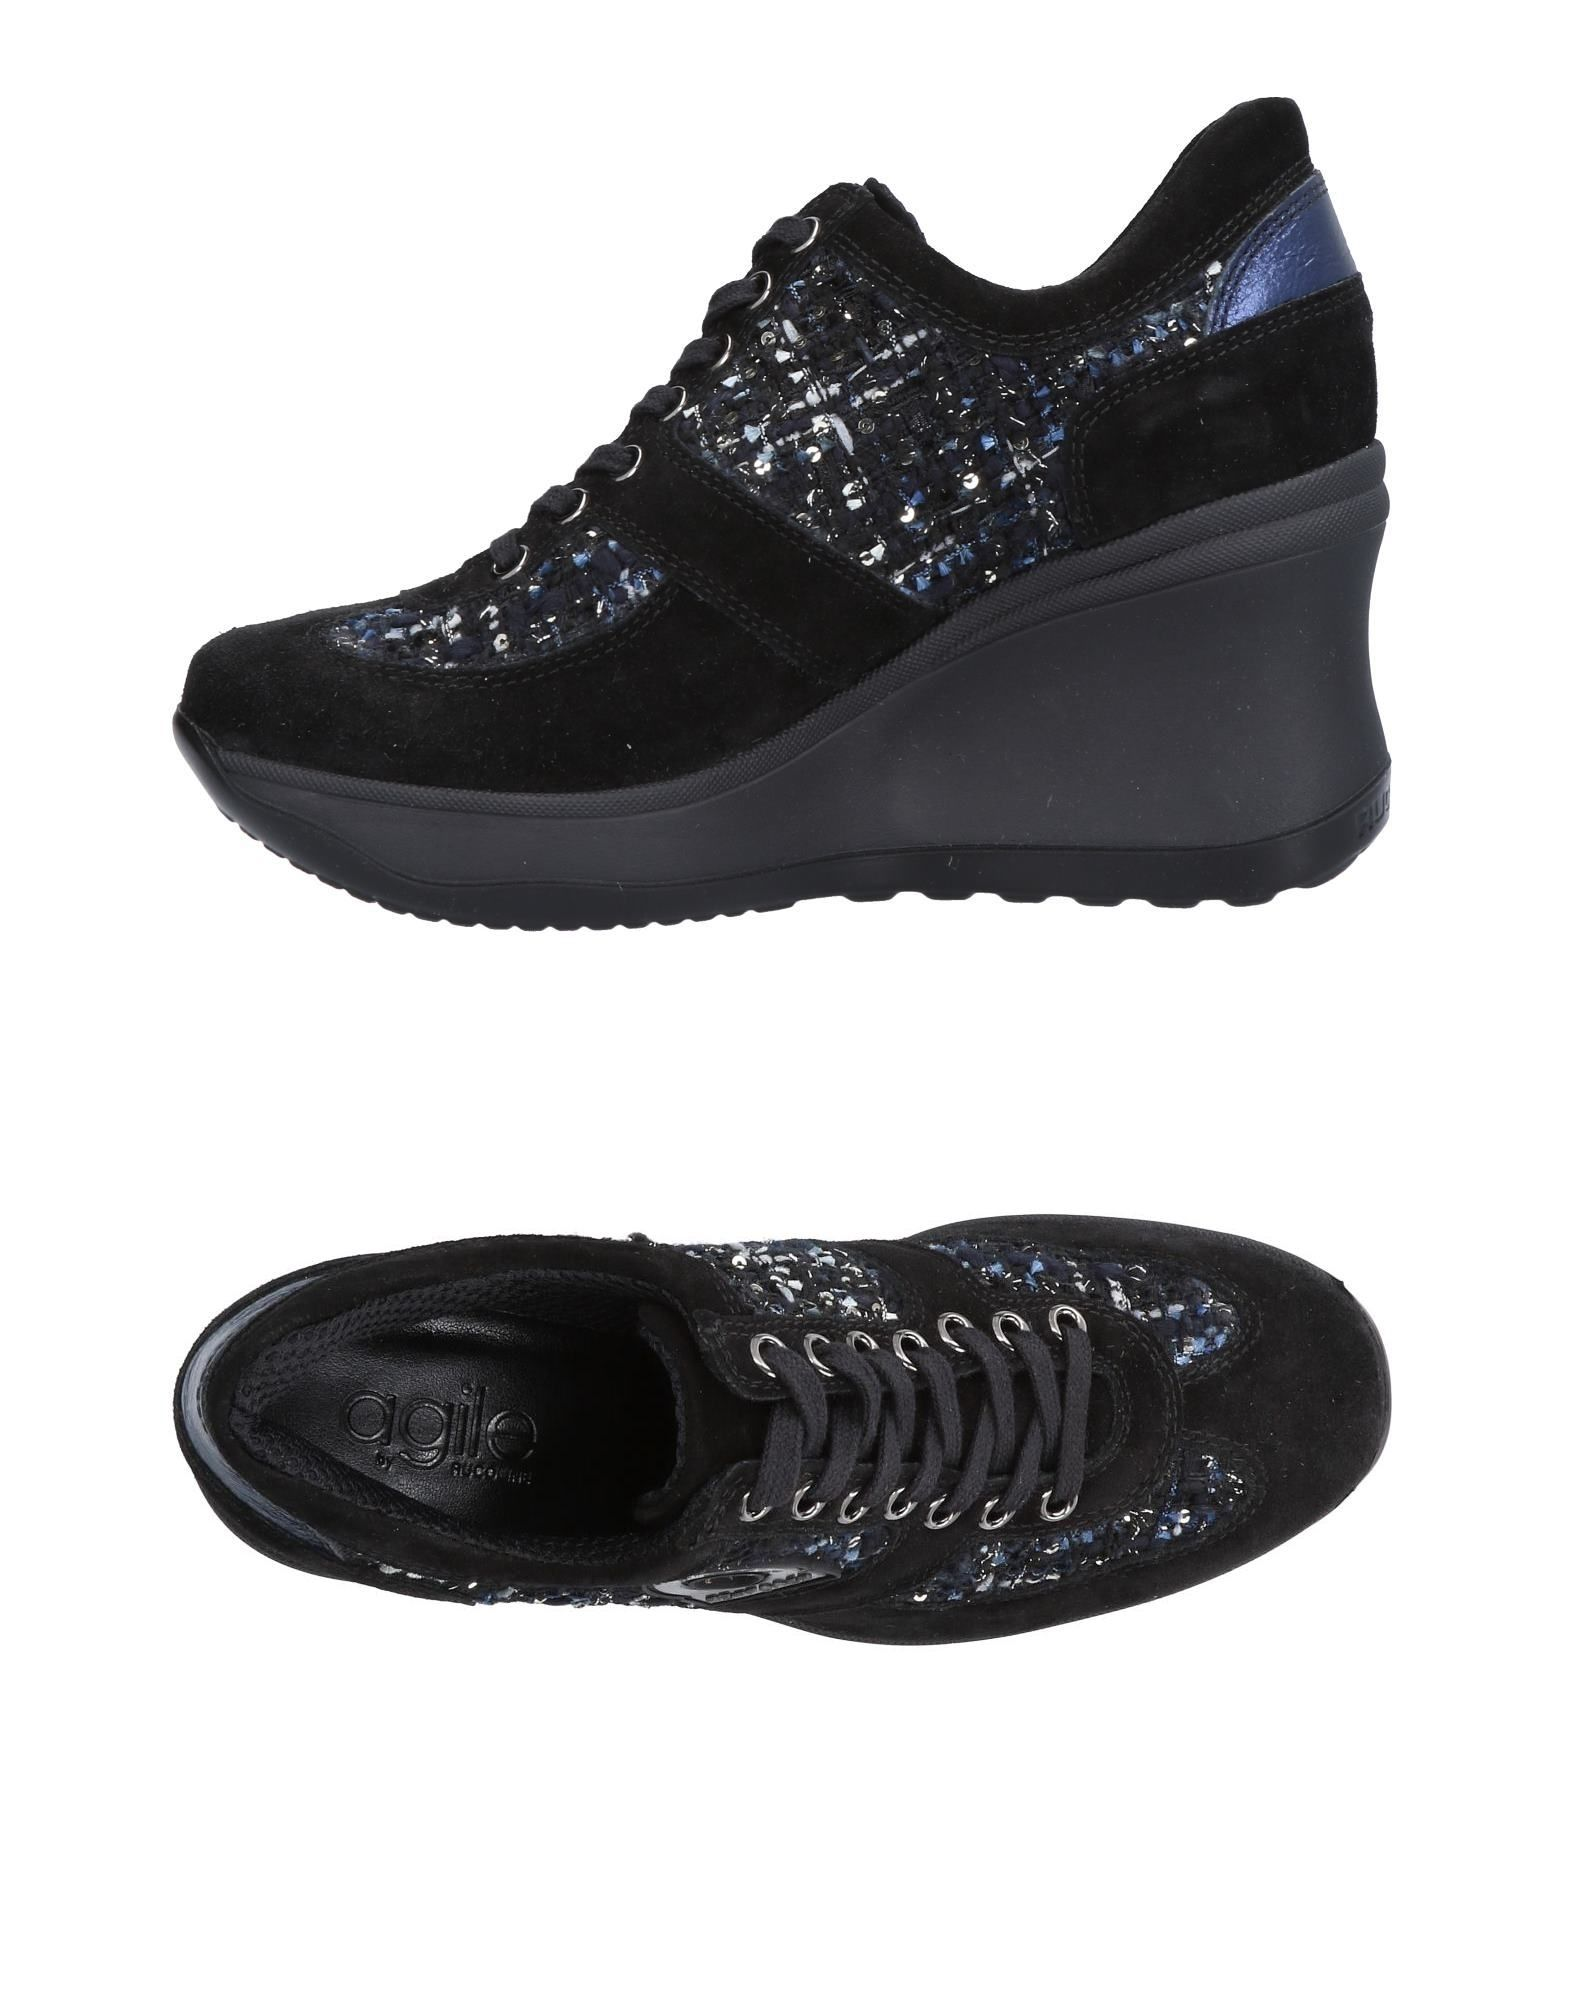 Agile By Rucoline Sneakers Rucoline - Women Agile By Rucoline Sneakers Sneakers online on  United Kingdom - 11496584VV 89c426